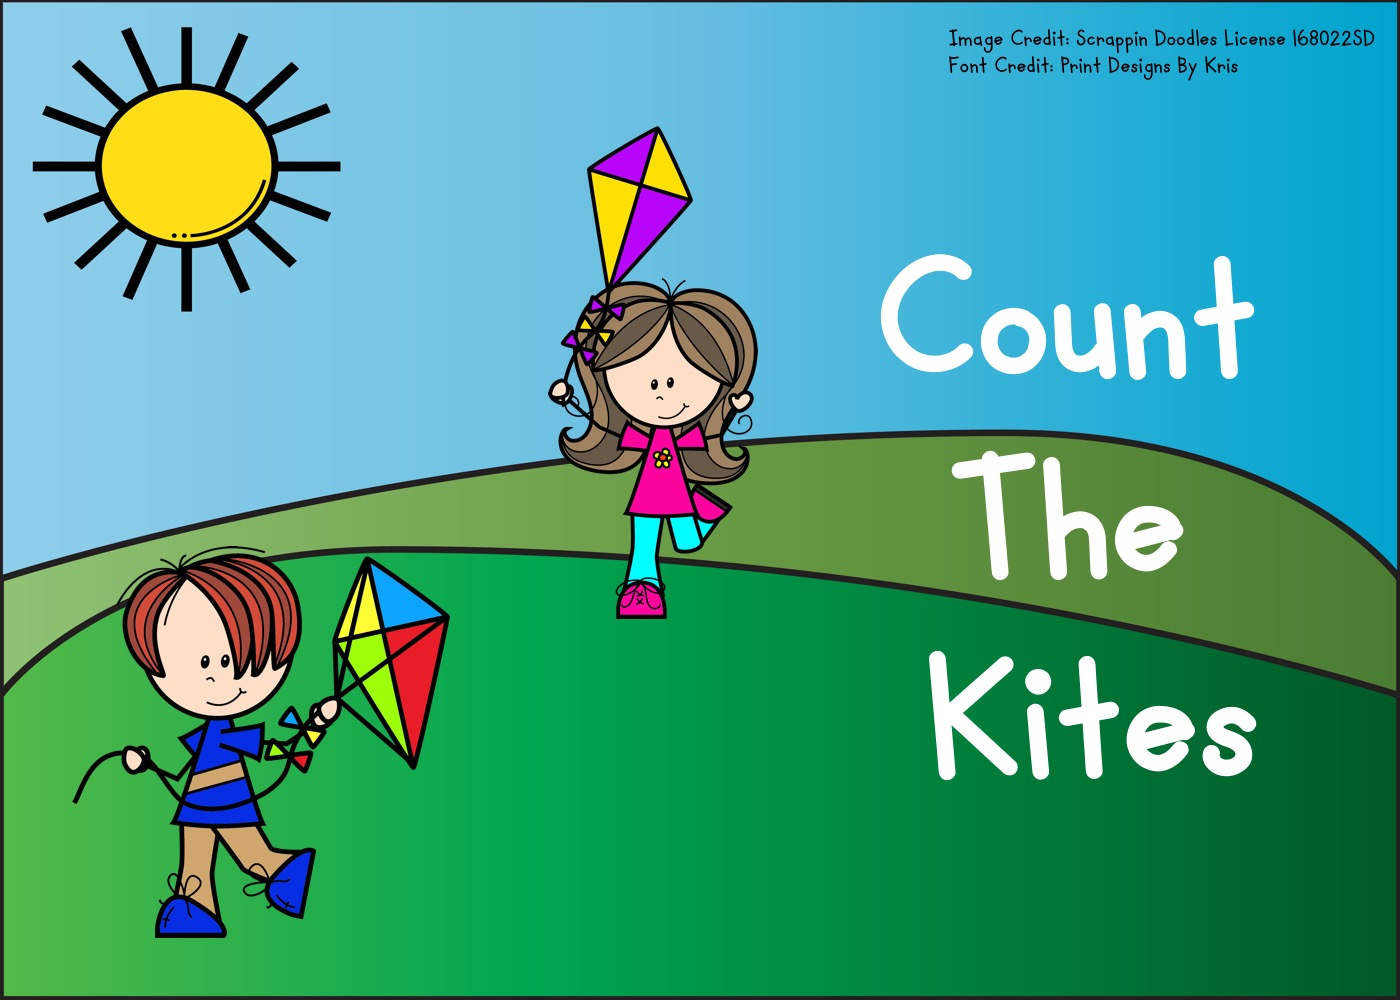 Fun Kite Printables for Preschool and Kindergarten | Spring Themed Weather Games | Hands On Math Homeschool Activities | Kids Classroom Center Ideas and Worksheets #FreePrintableWorksheetsForKids #kite #spring #weather #counting